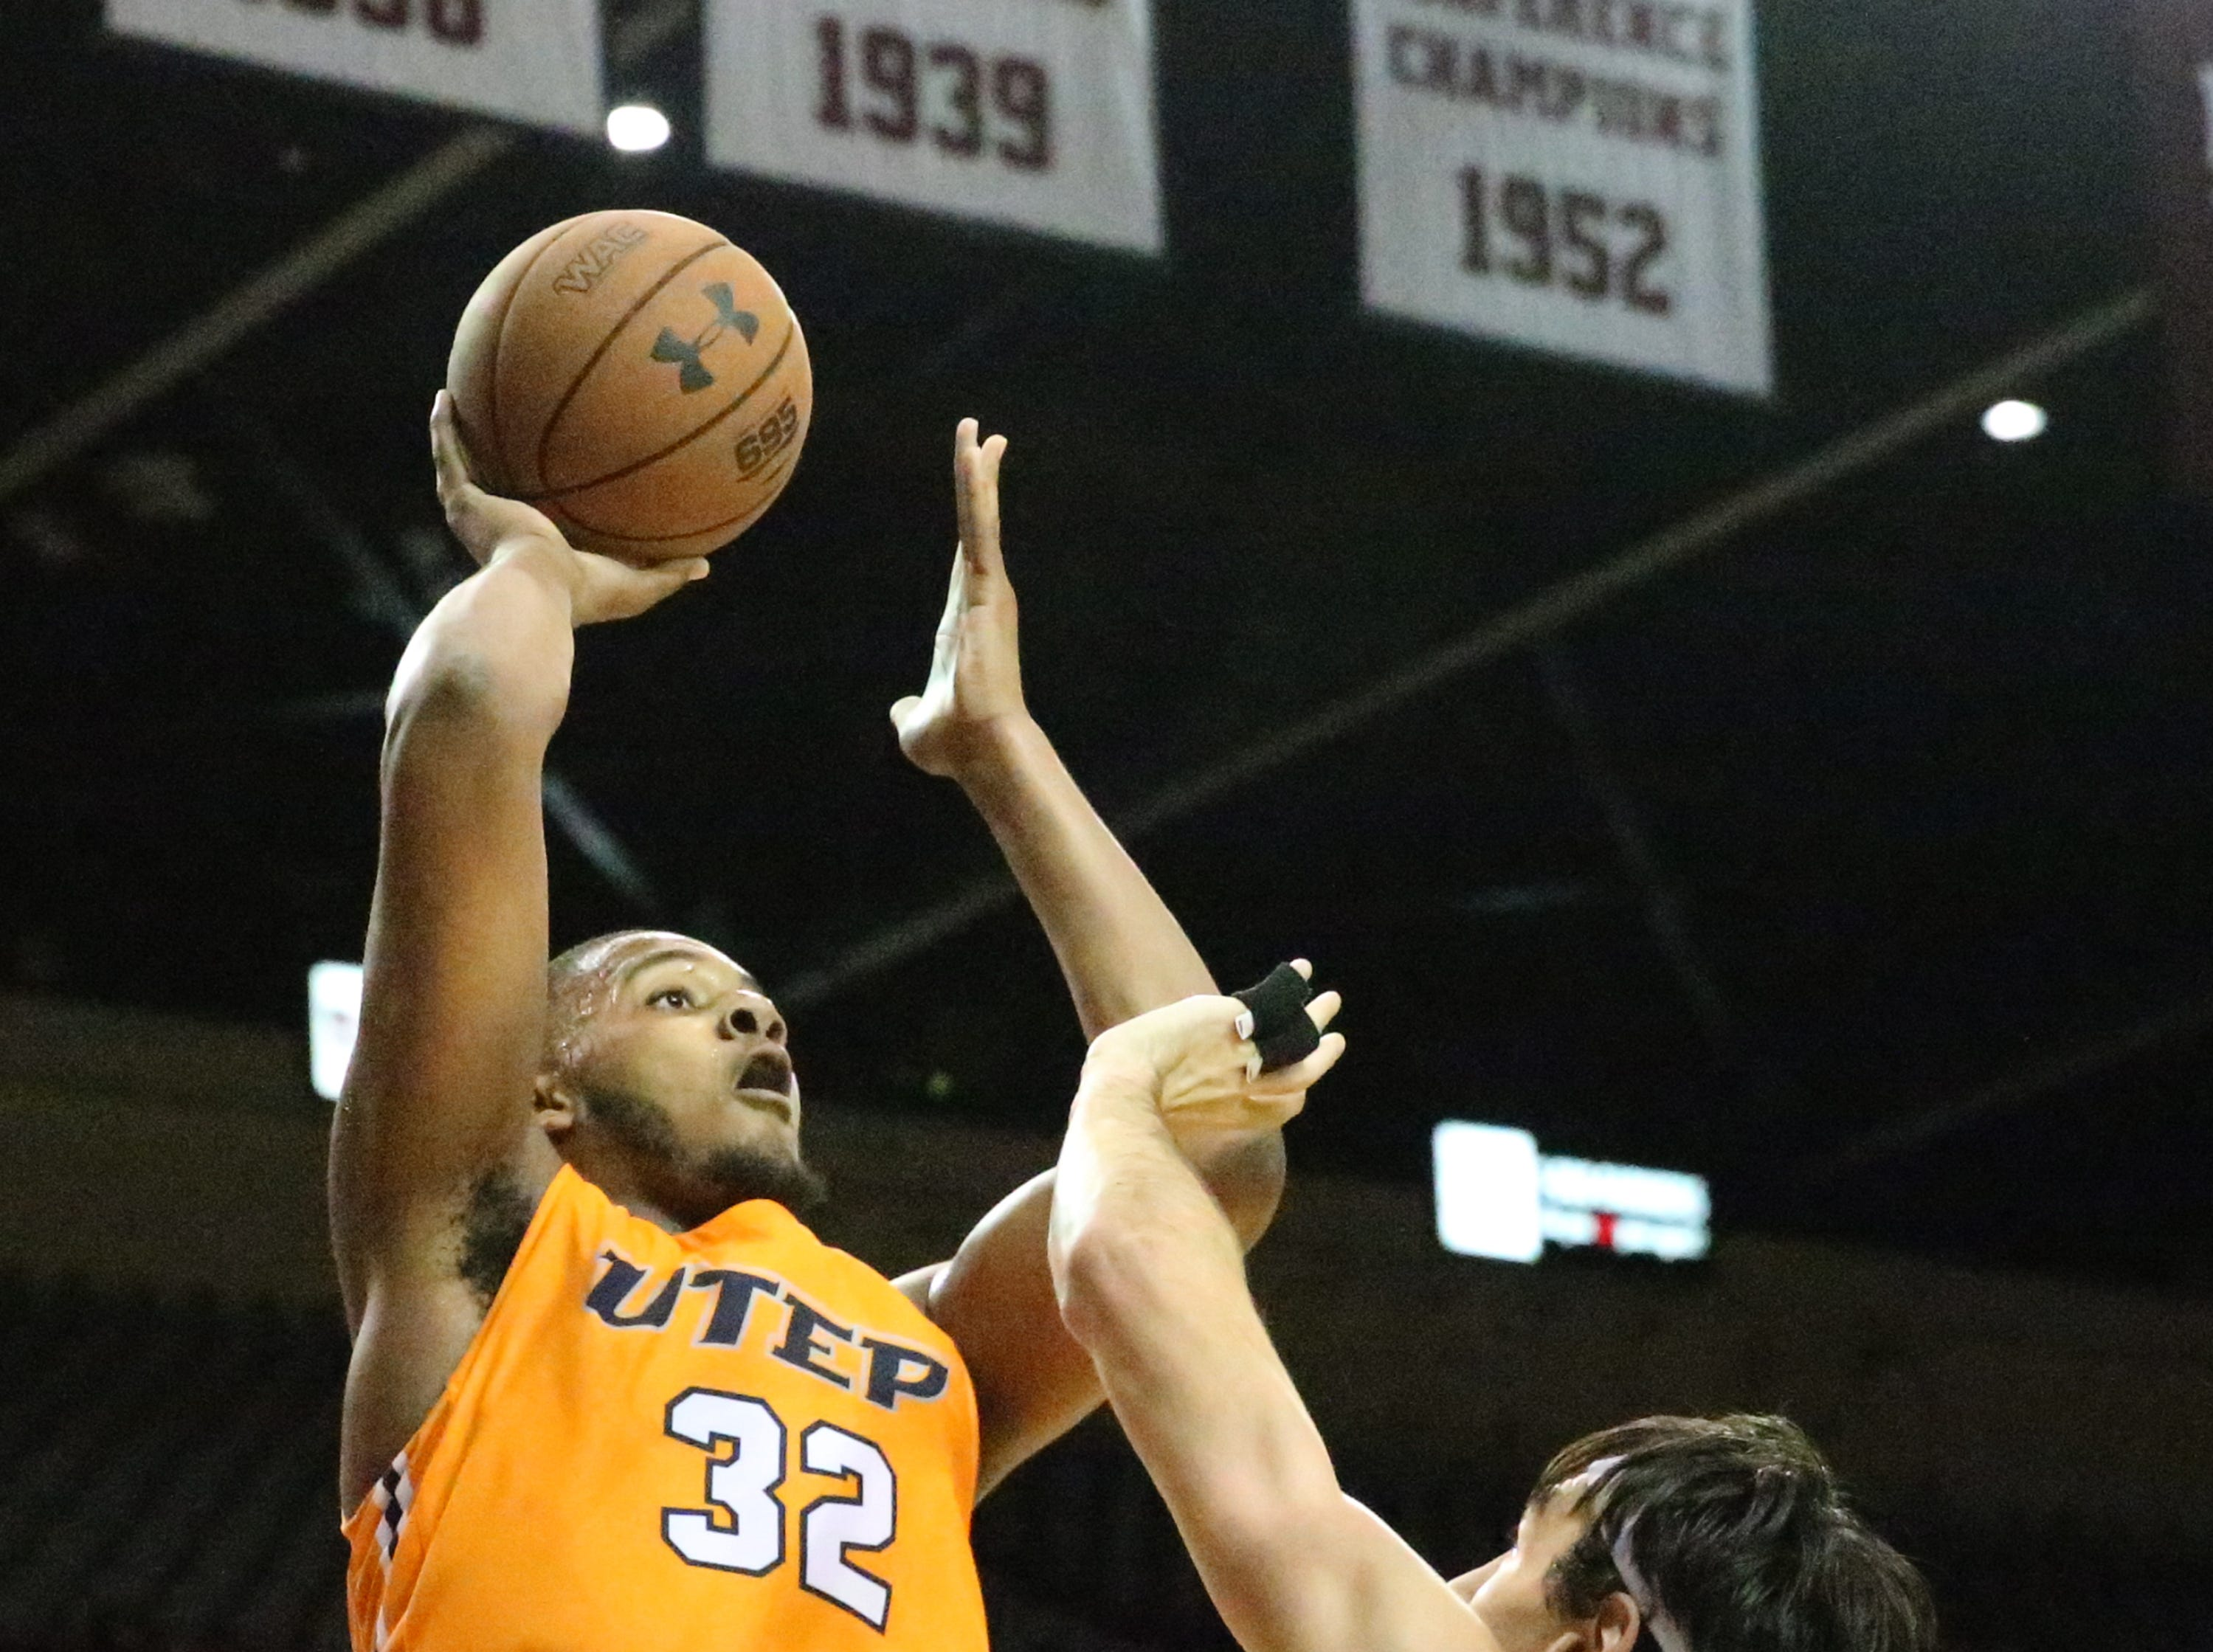 UTEP's Efe Odigie, 32, rises for a shot against NMSU.